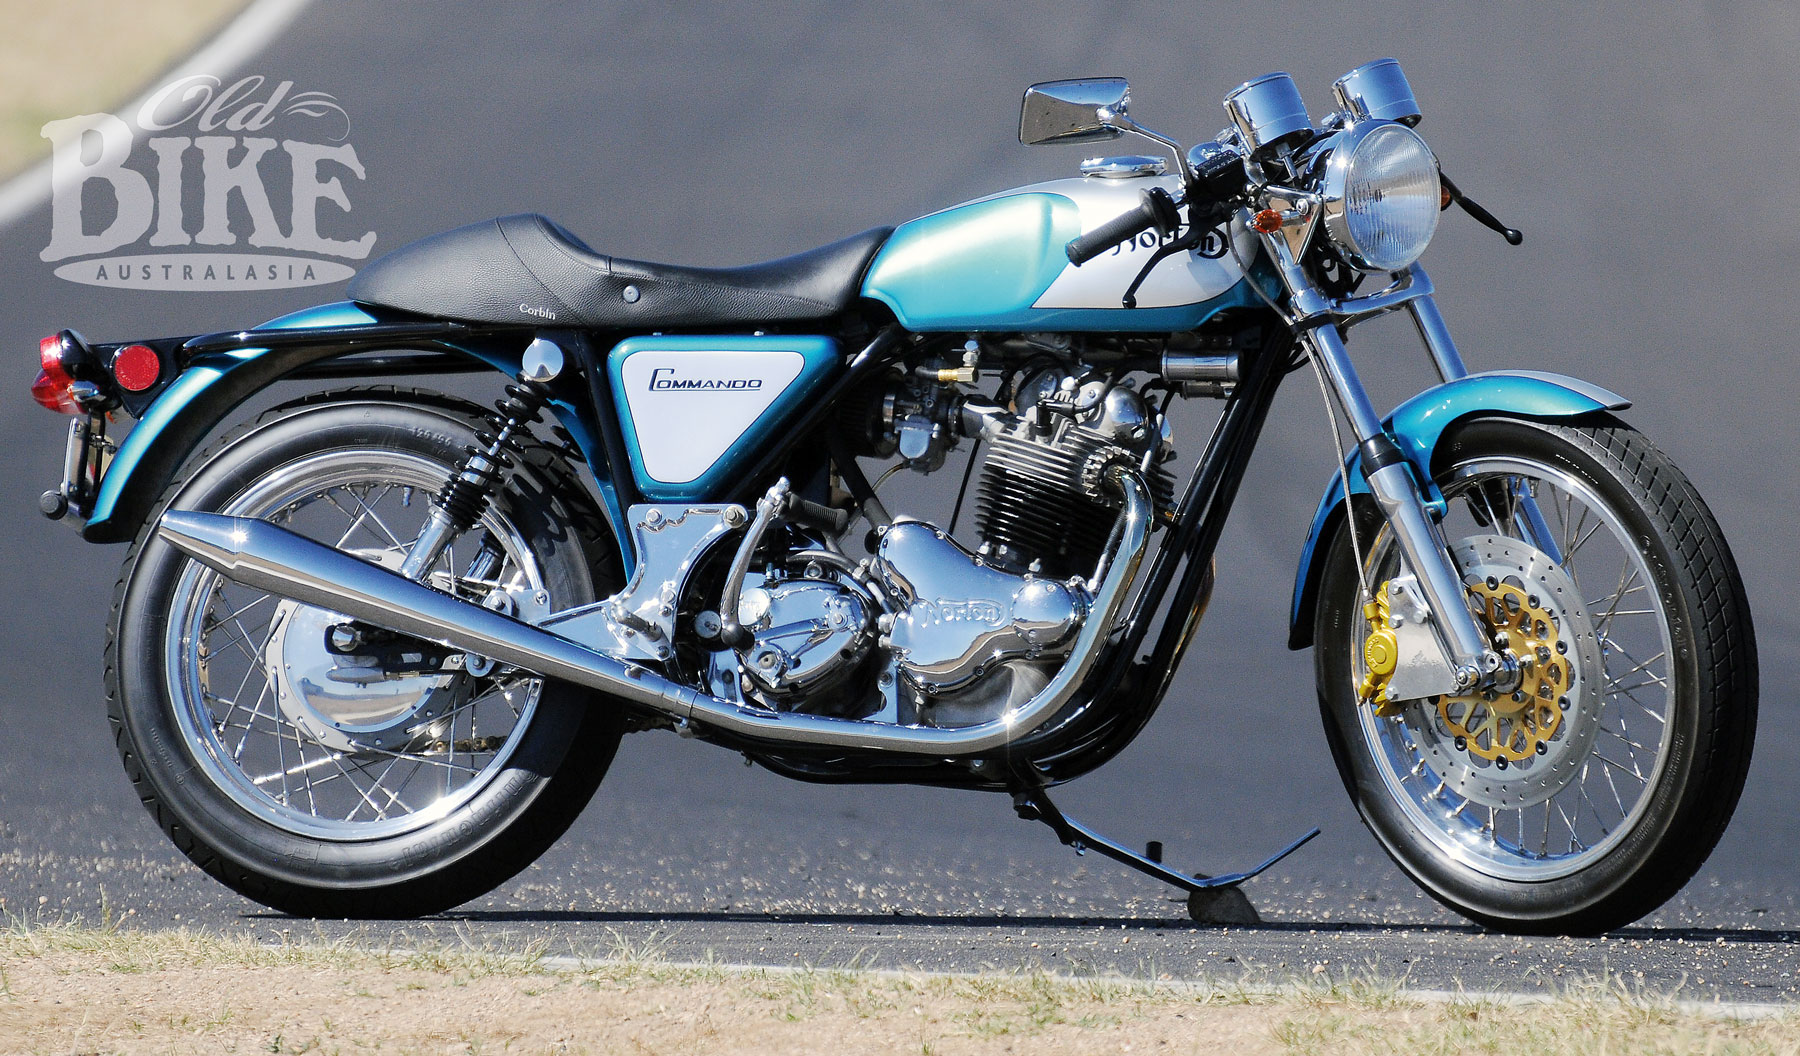 norton commando taking command old bike australasia